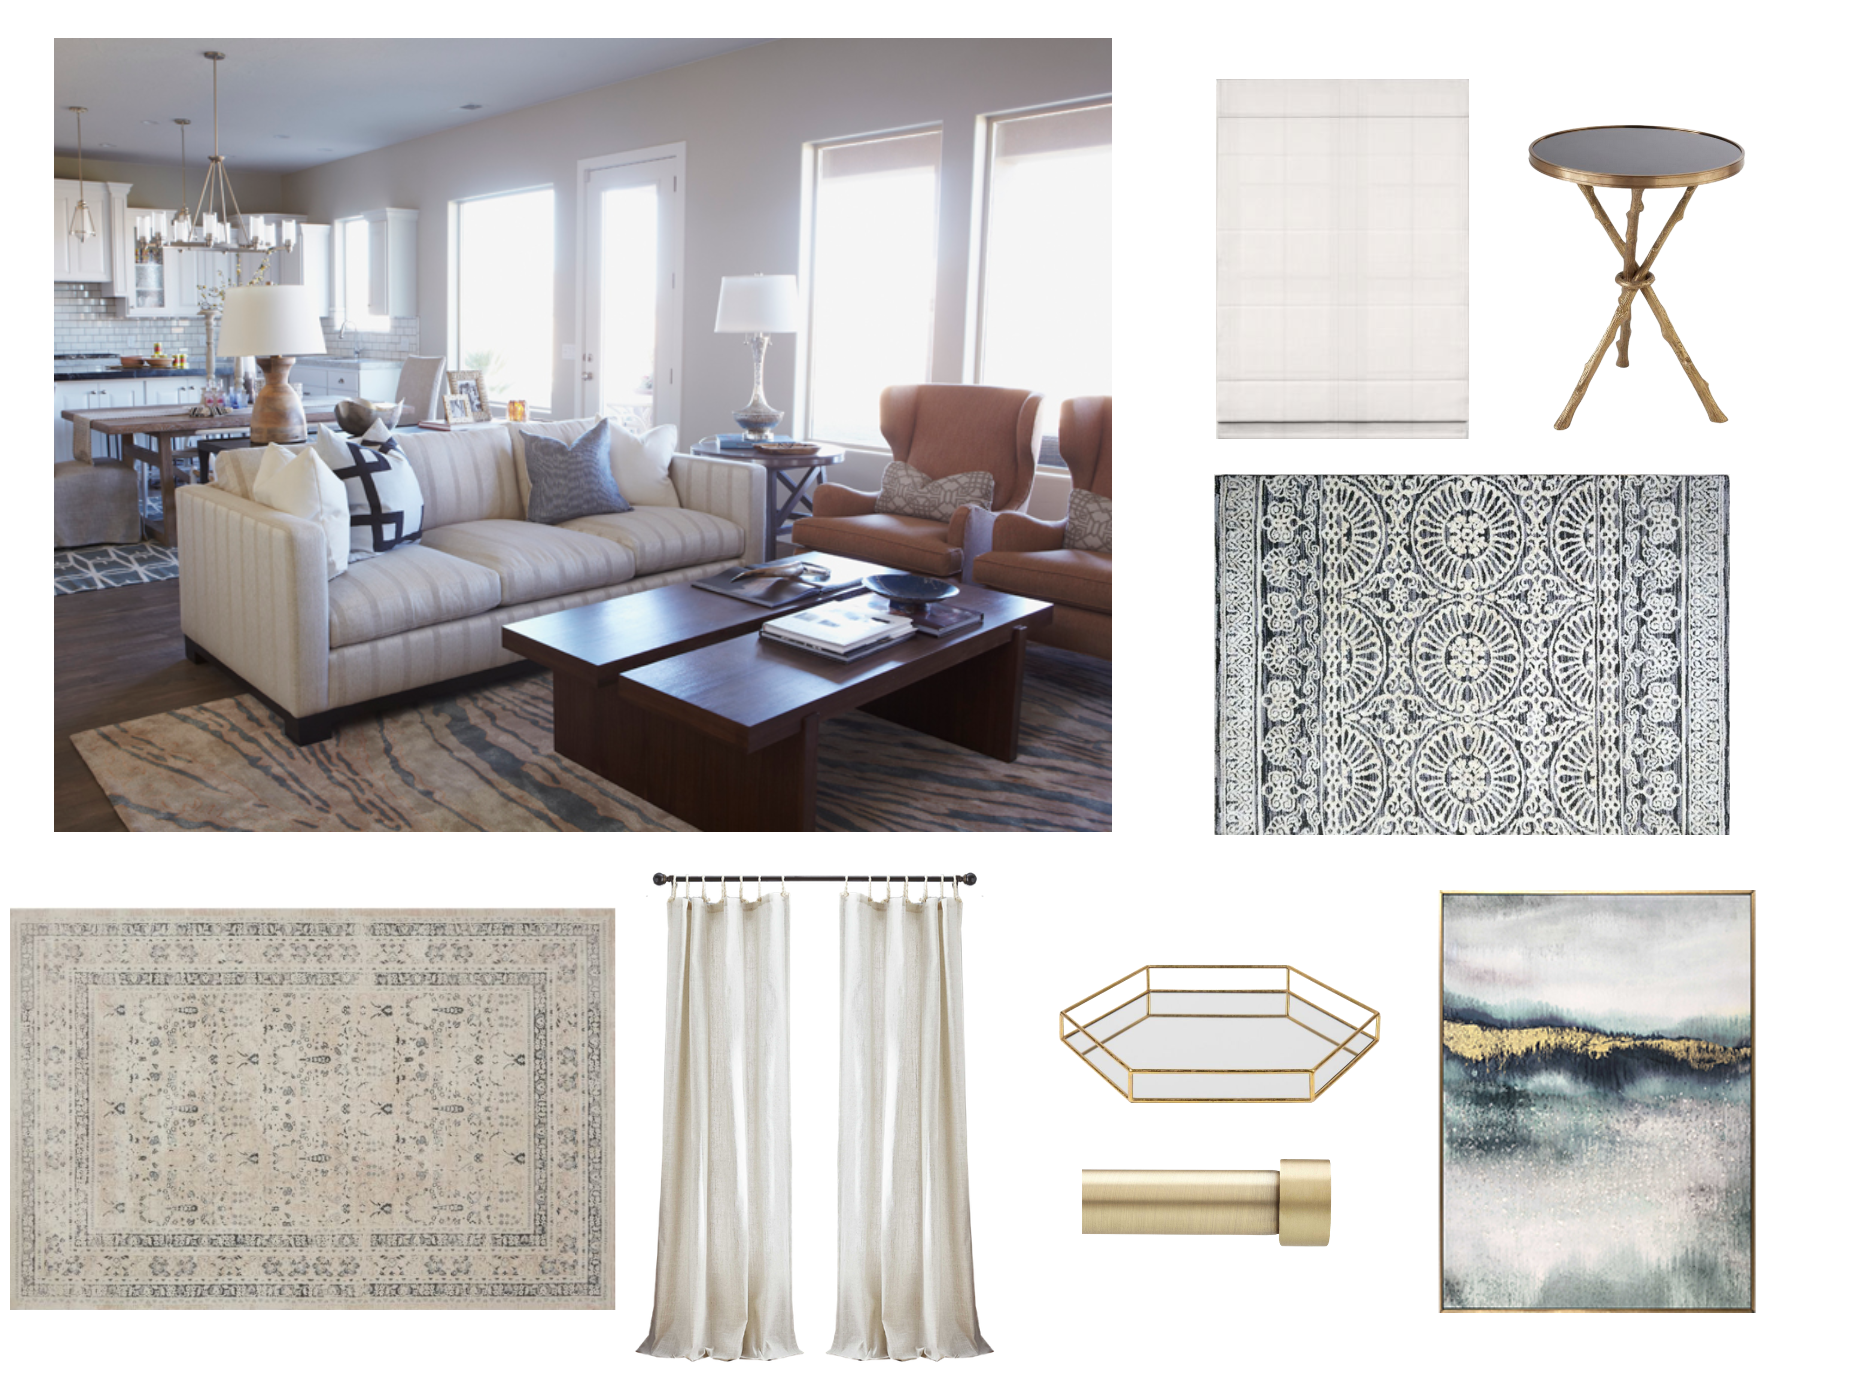 10 ways to decorate your home with shiplap.htm open concept dining and living spaces   decorist  open concept dining and living spaces